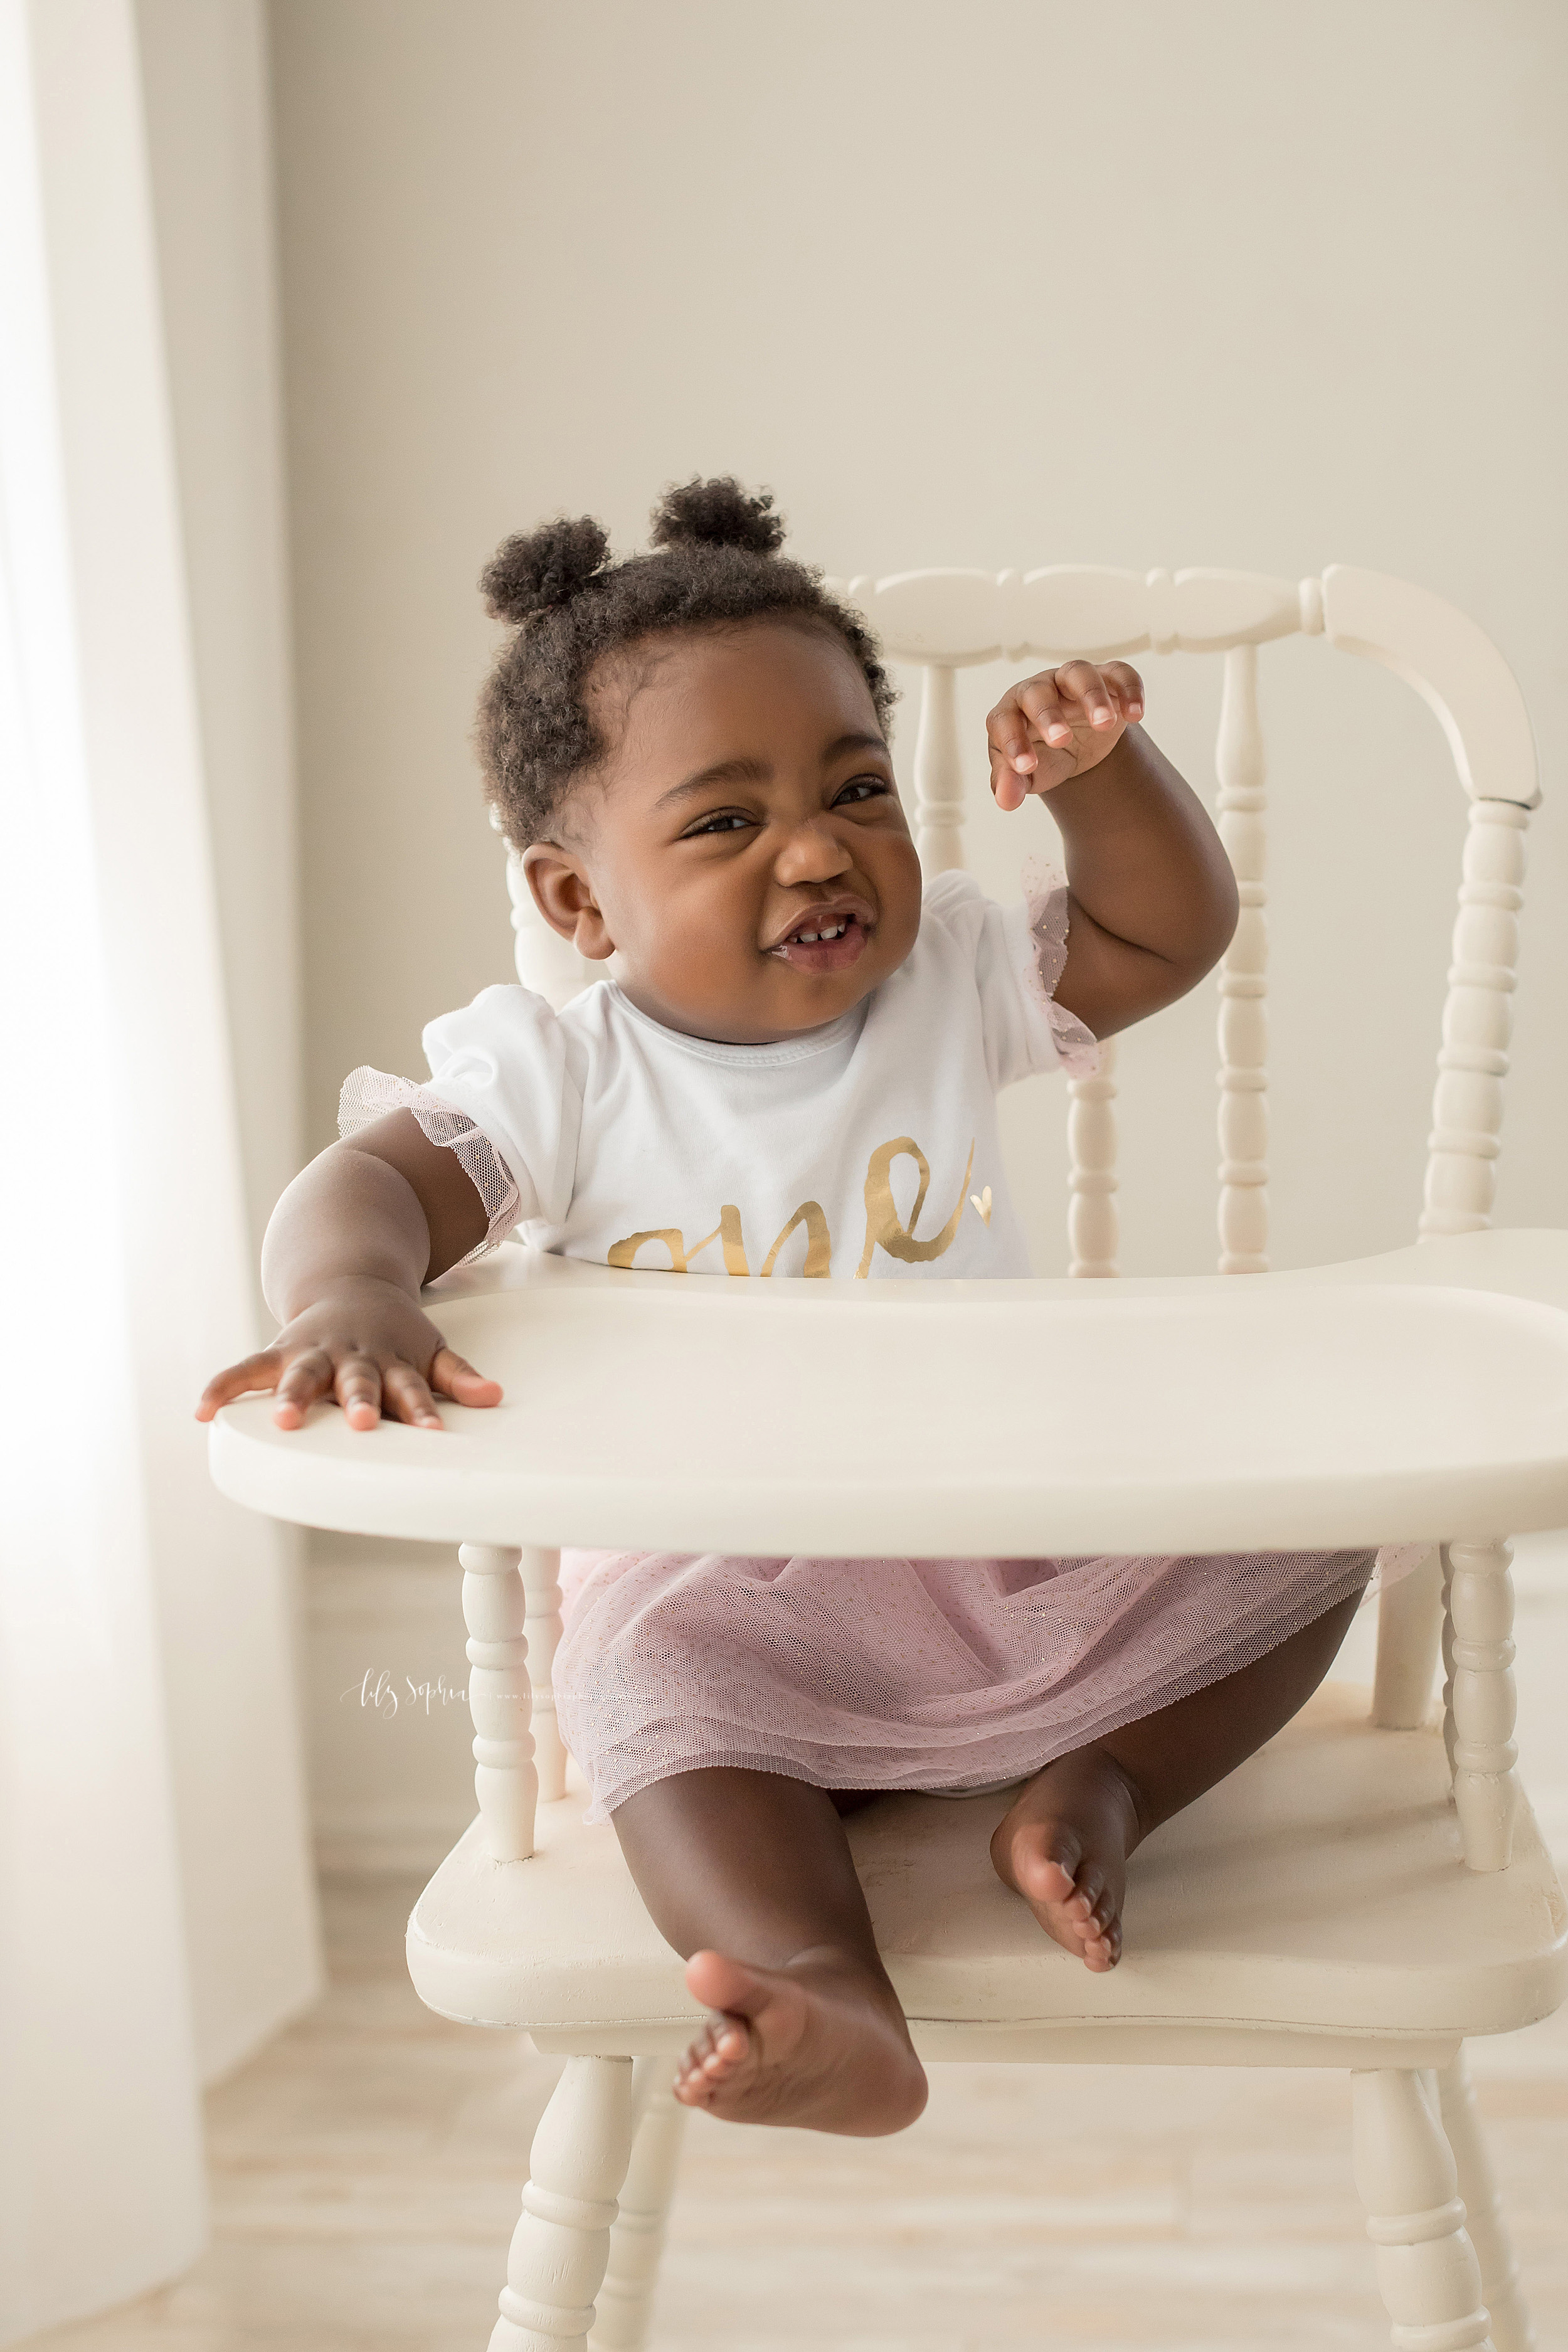 Milestone photo of a baby girl who is chattering and gesturing as she sits in an Atlanta studio in natural light in an antique high chair wanting her first birthday cake to be set before her.